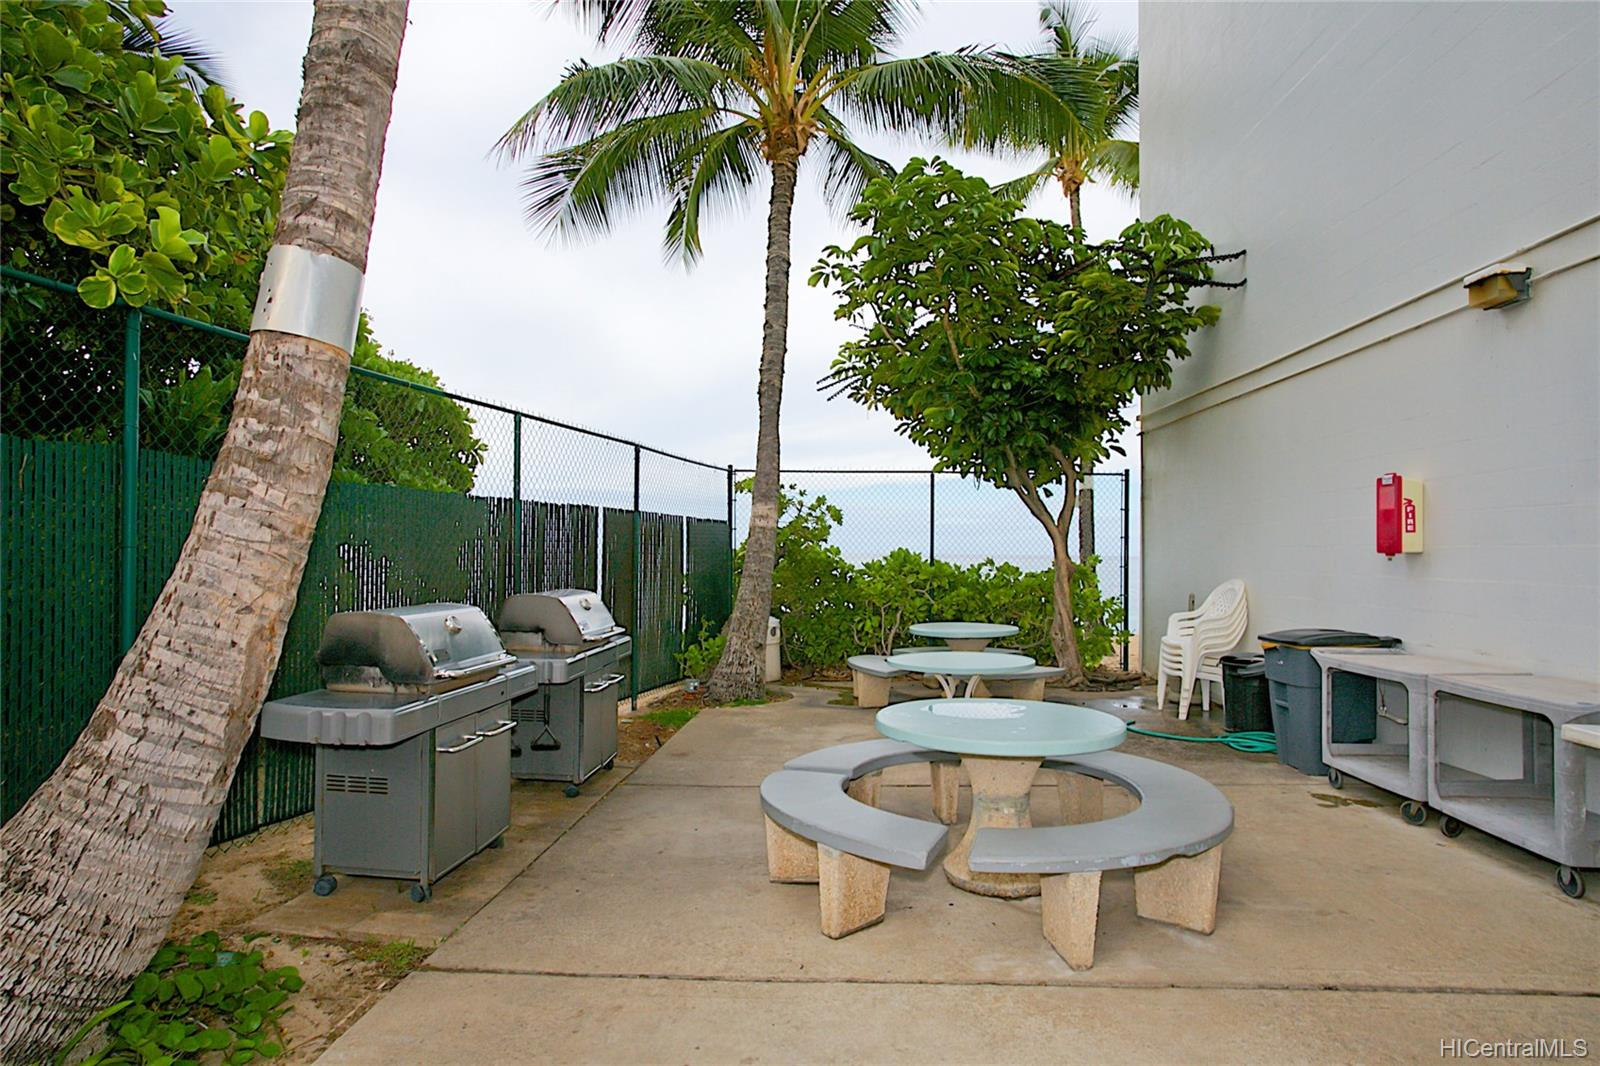 Makaha Beach Cabanas 84-965 Farrington Highway  Unit A202